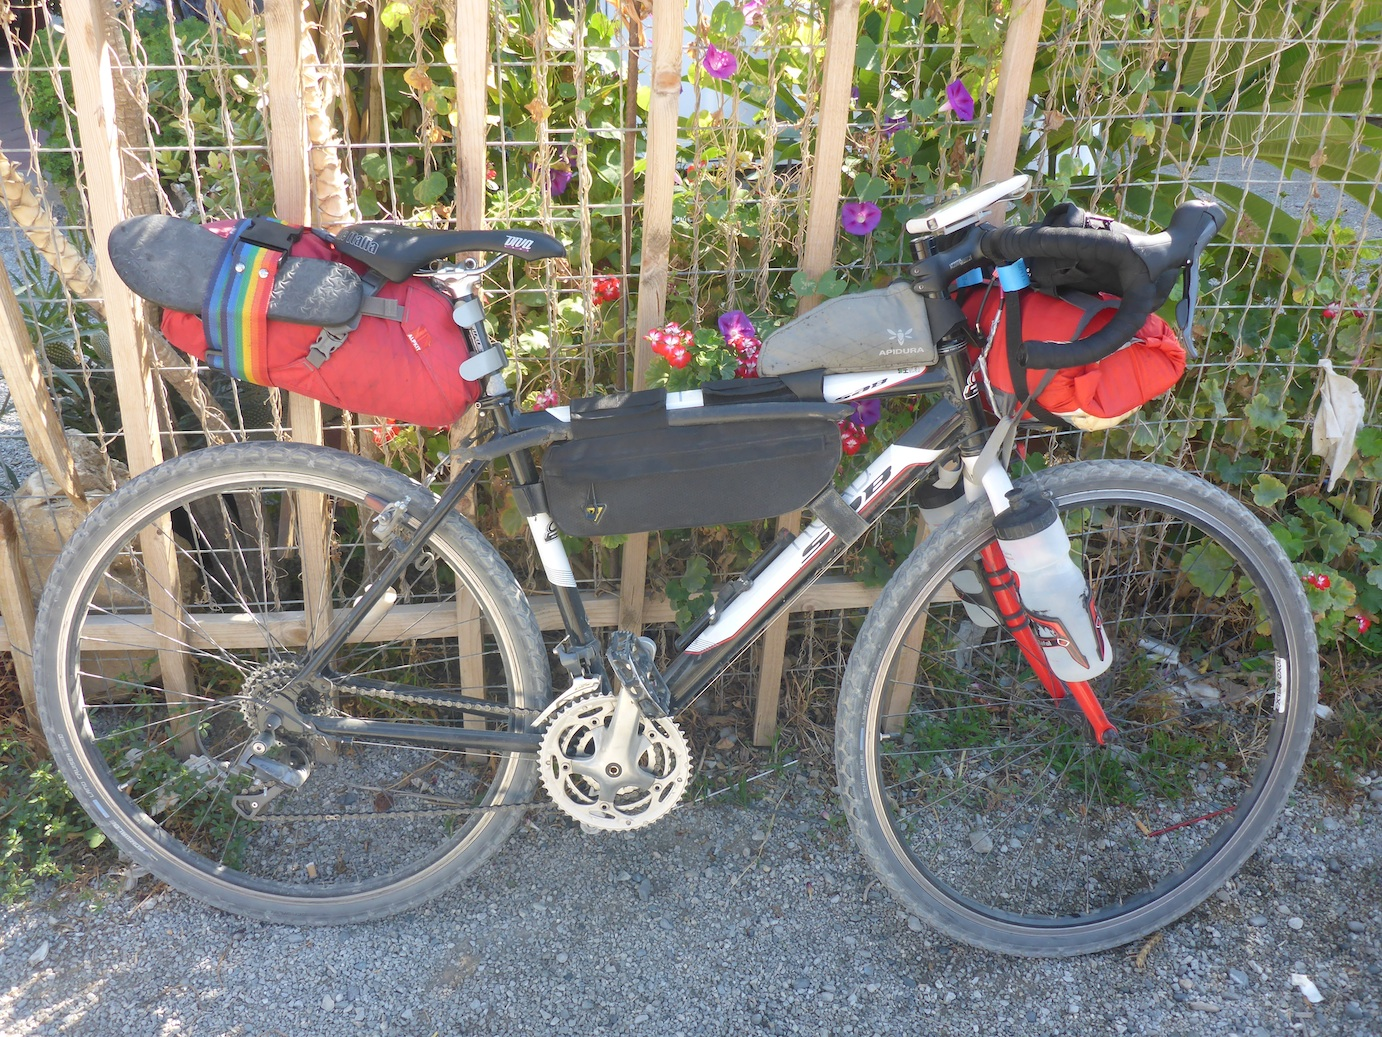 My bike, fully loaded. Note: plastic pipe, psychological deterrent for angry loose farm dogs… (thankfully never needed!)